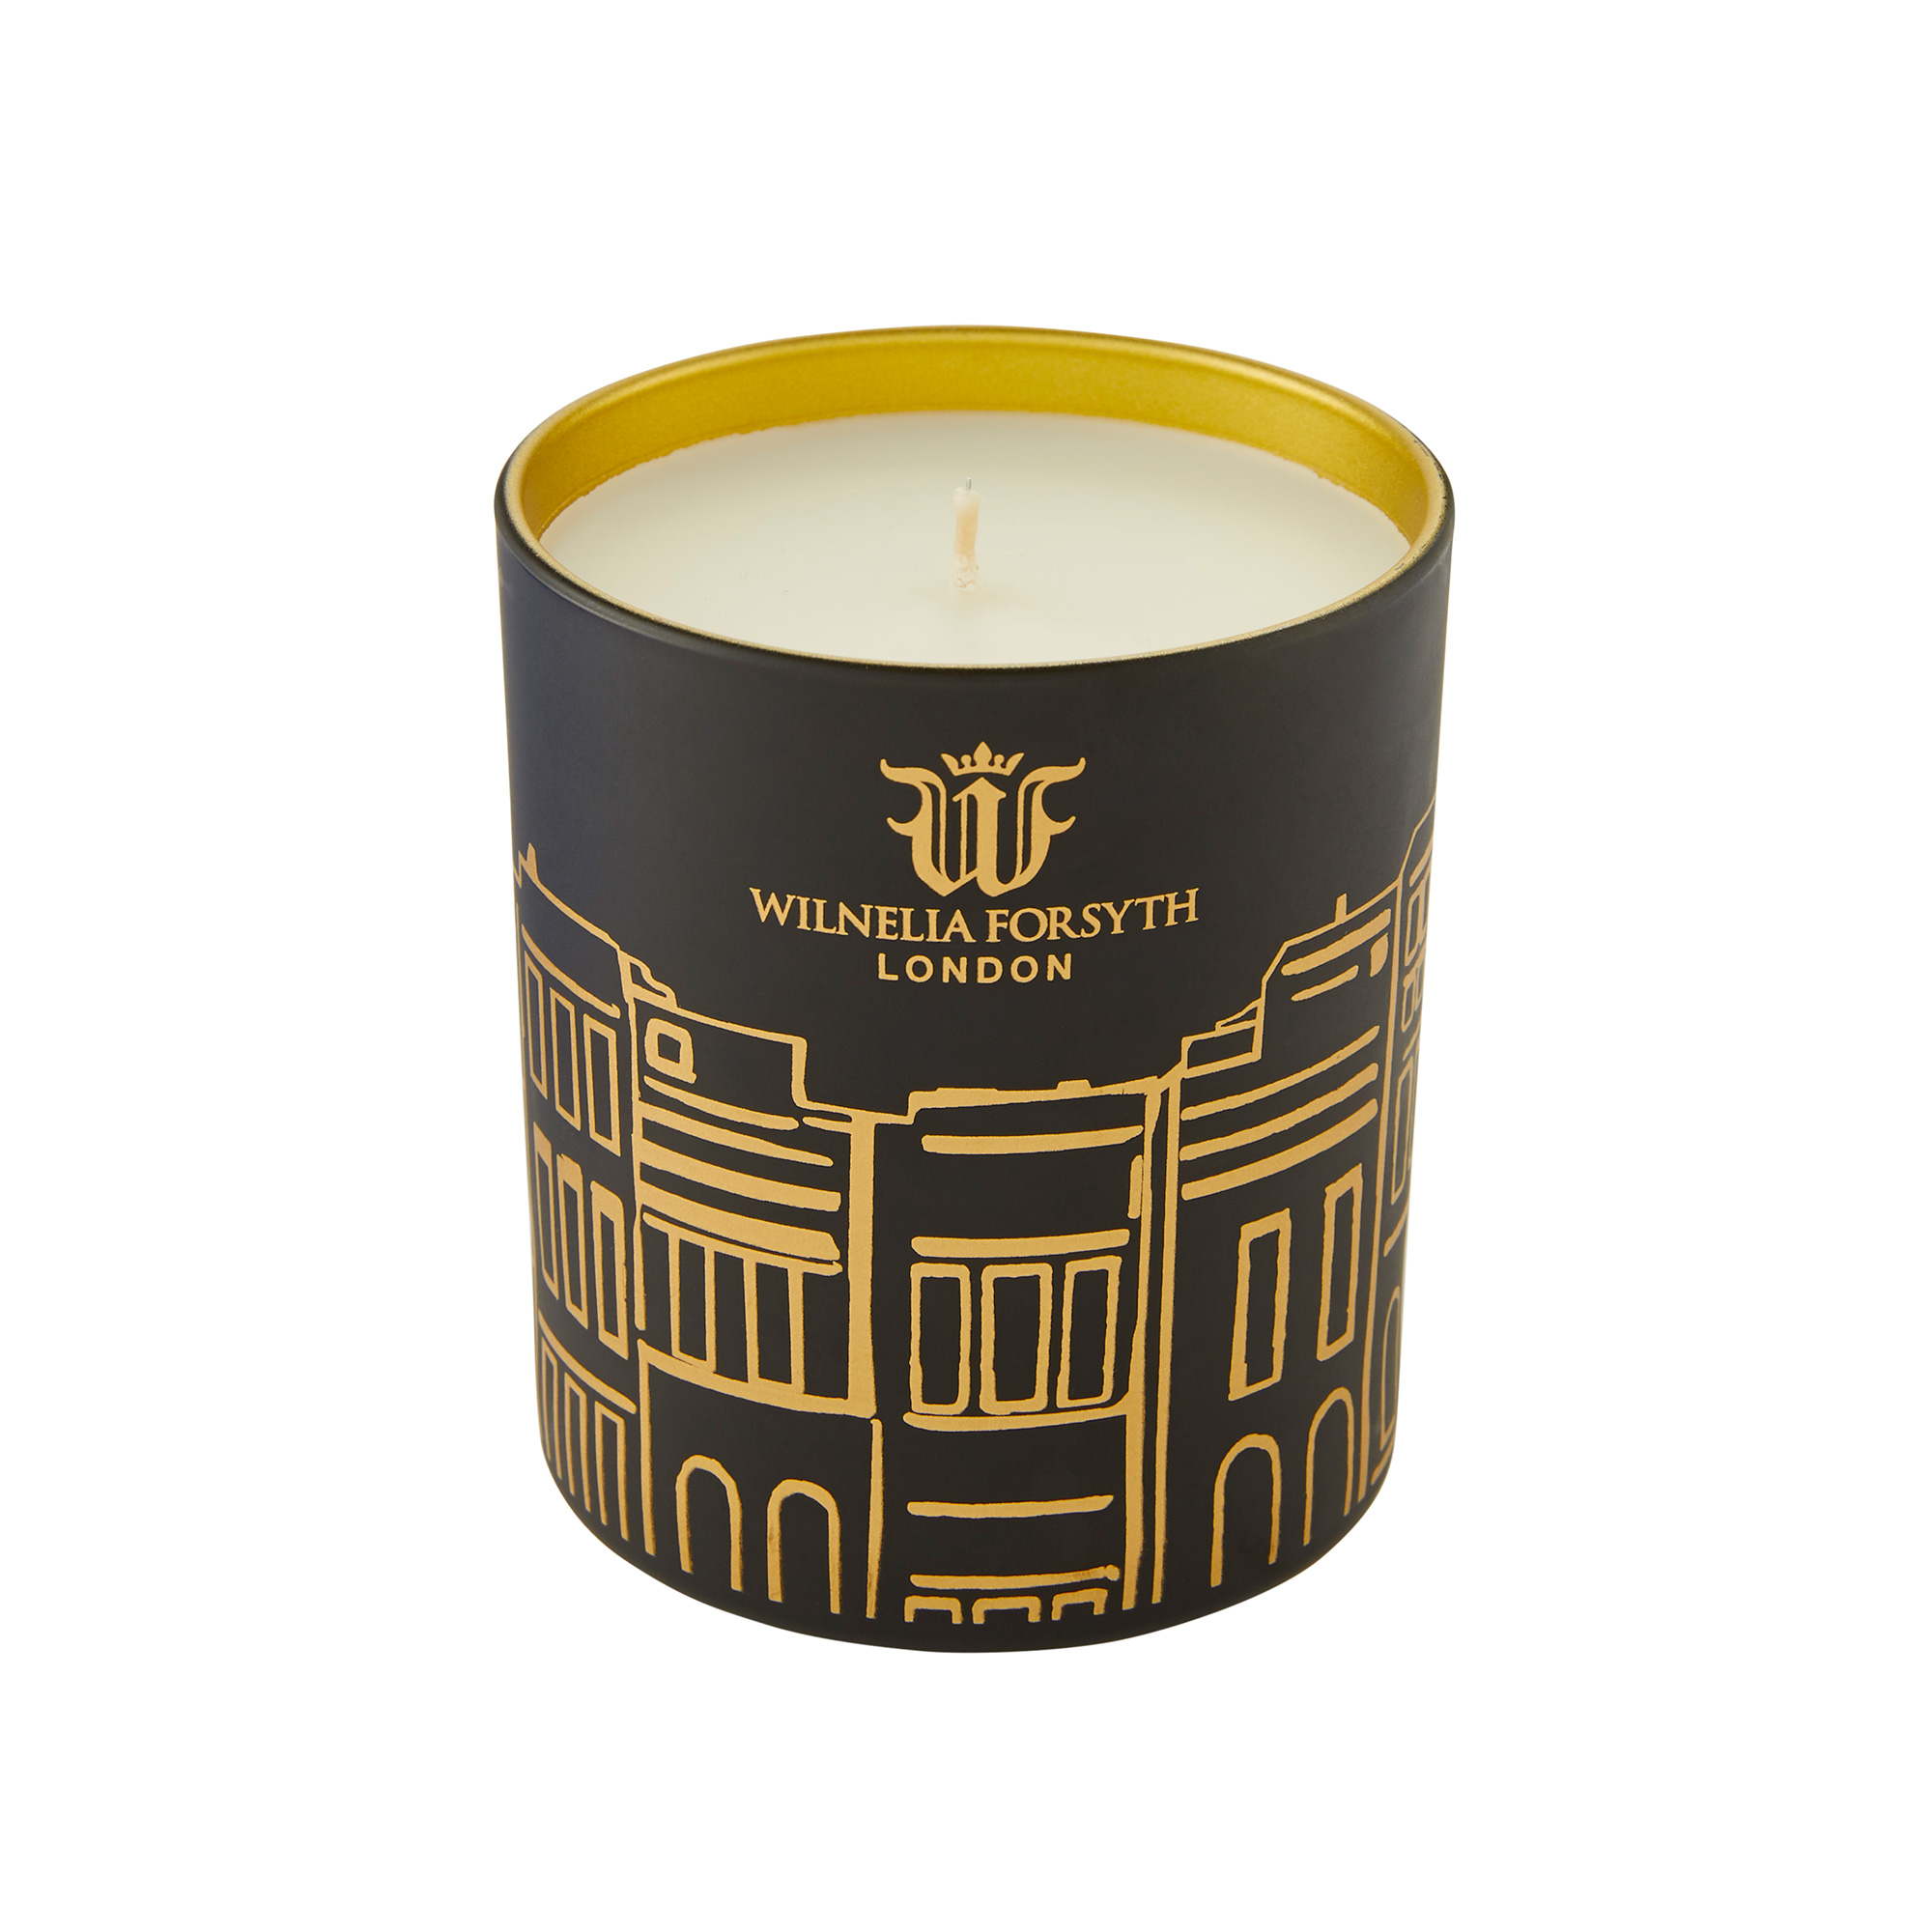 Celebration Candle – Wilnelia Forsyth Candles